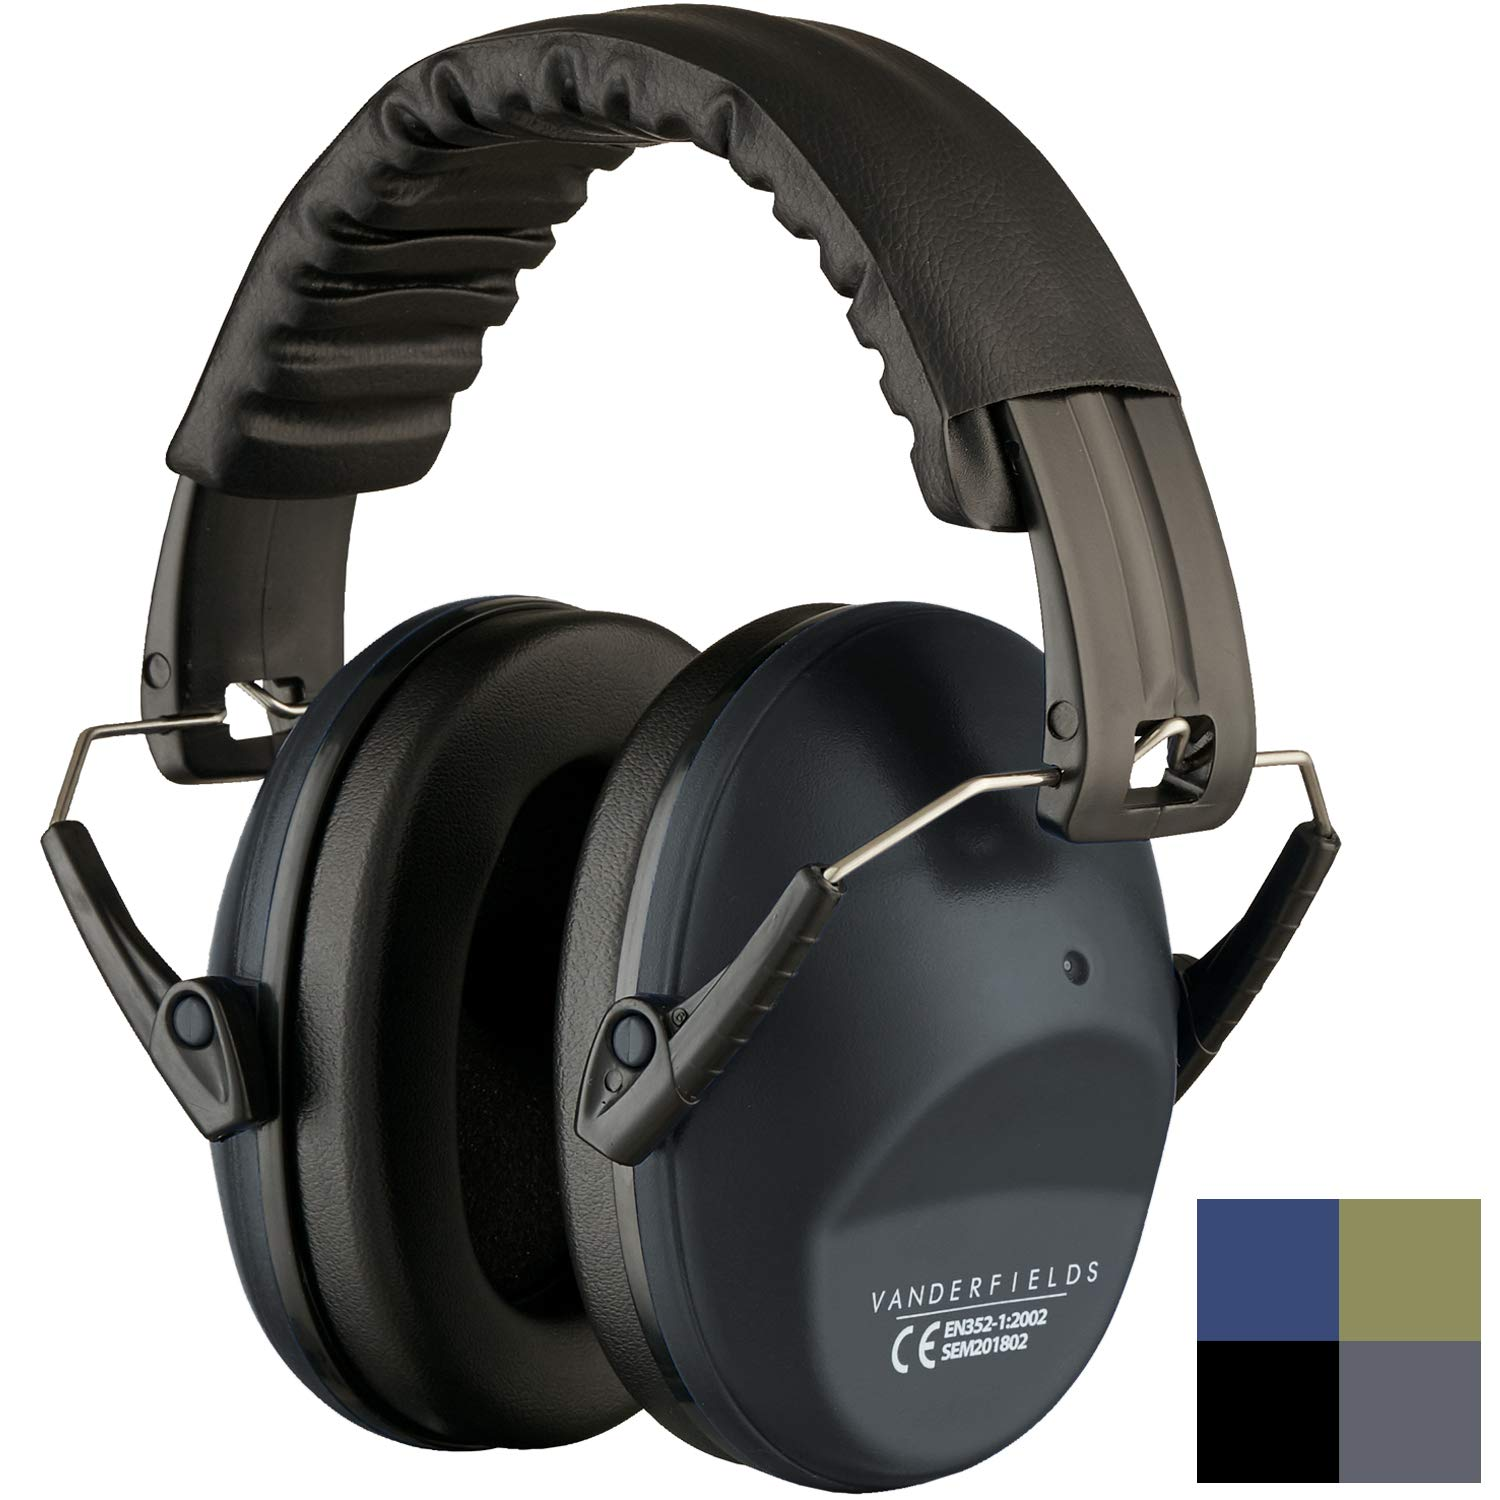 Ear Protection for Shooting - Compact Foldable Portable Hearing Protection Safety Earmuffs for Blocking Sound Reduction - Perfect for Hunting Range Studying Lawn Mowing - Men Women Adults Iron Gray by Vanderfields